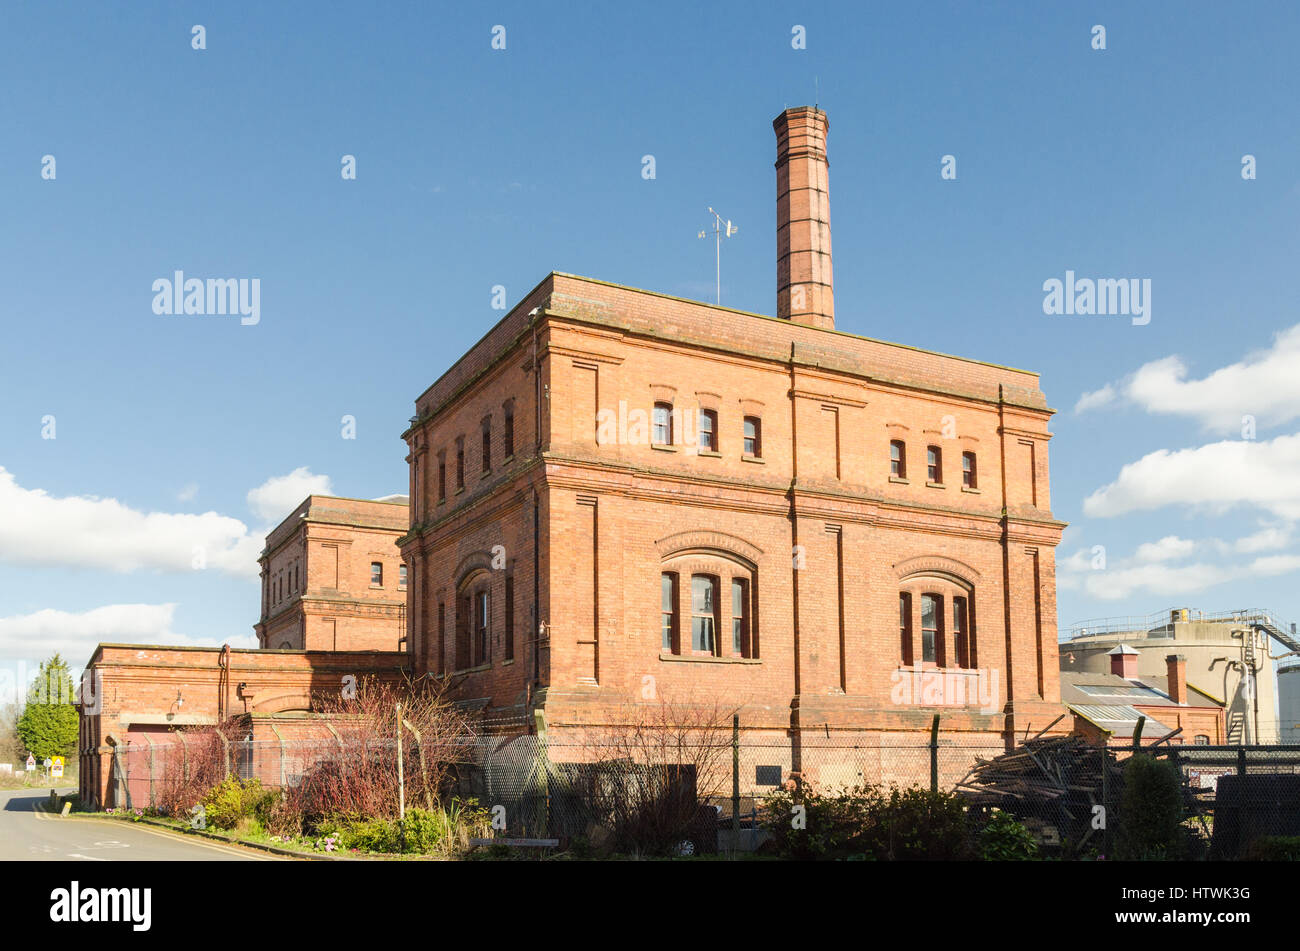 Claymills Victorian Pumping Station in Burton-upon-Trent, Staffordshire - Stock Image